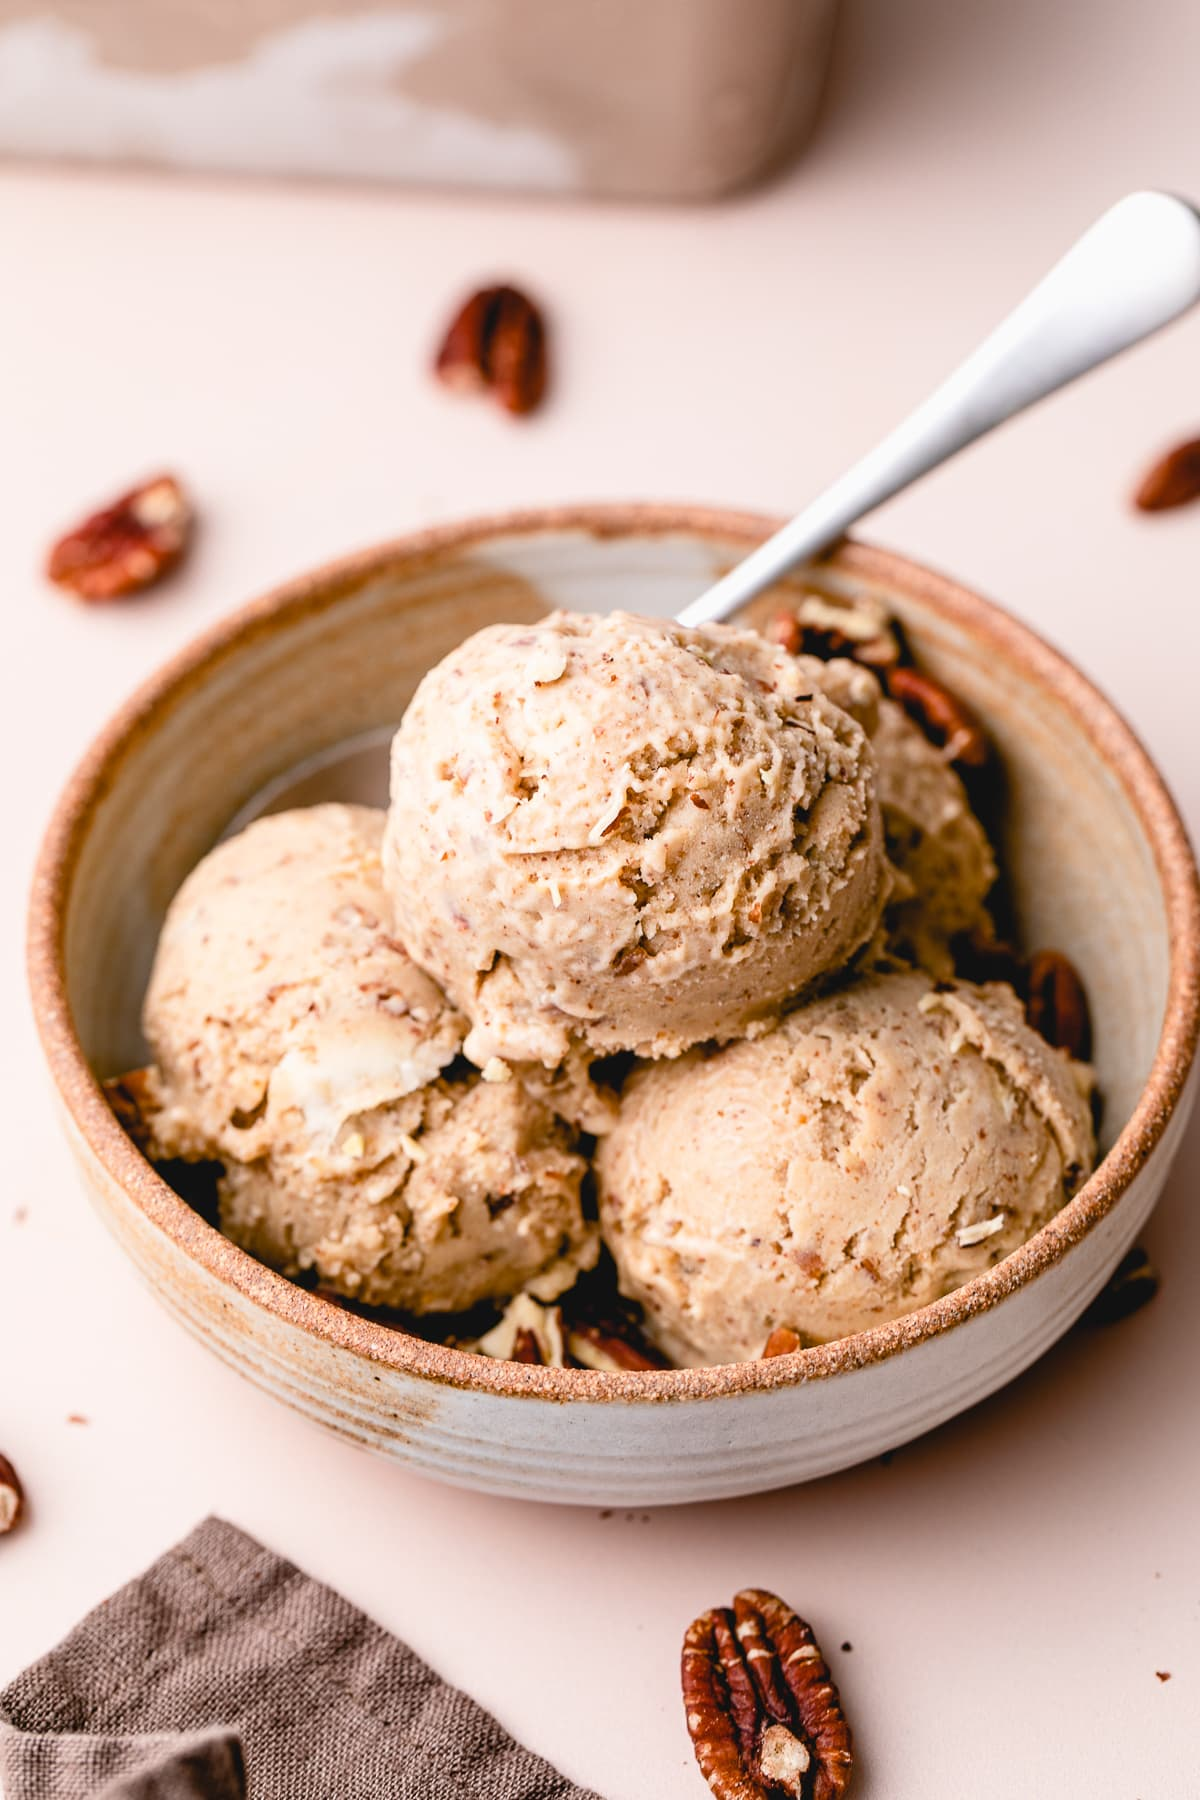 side angle view of healthy vegan butter pecan ice cream scoops in a bowl.